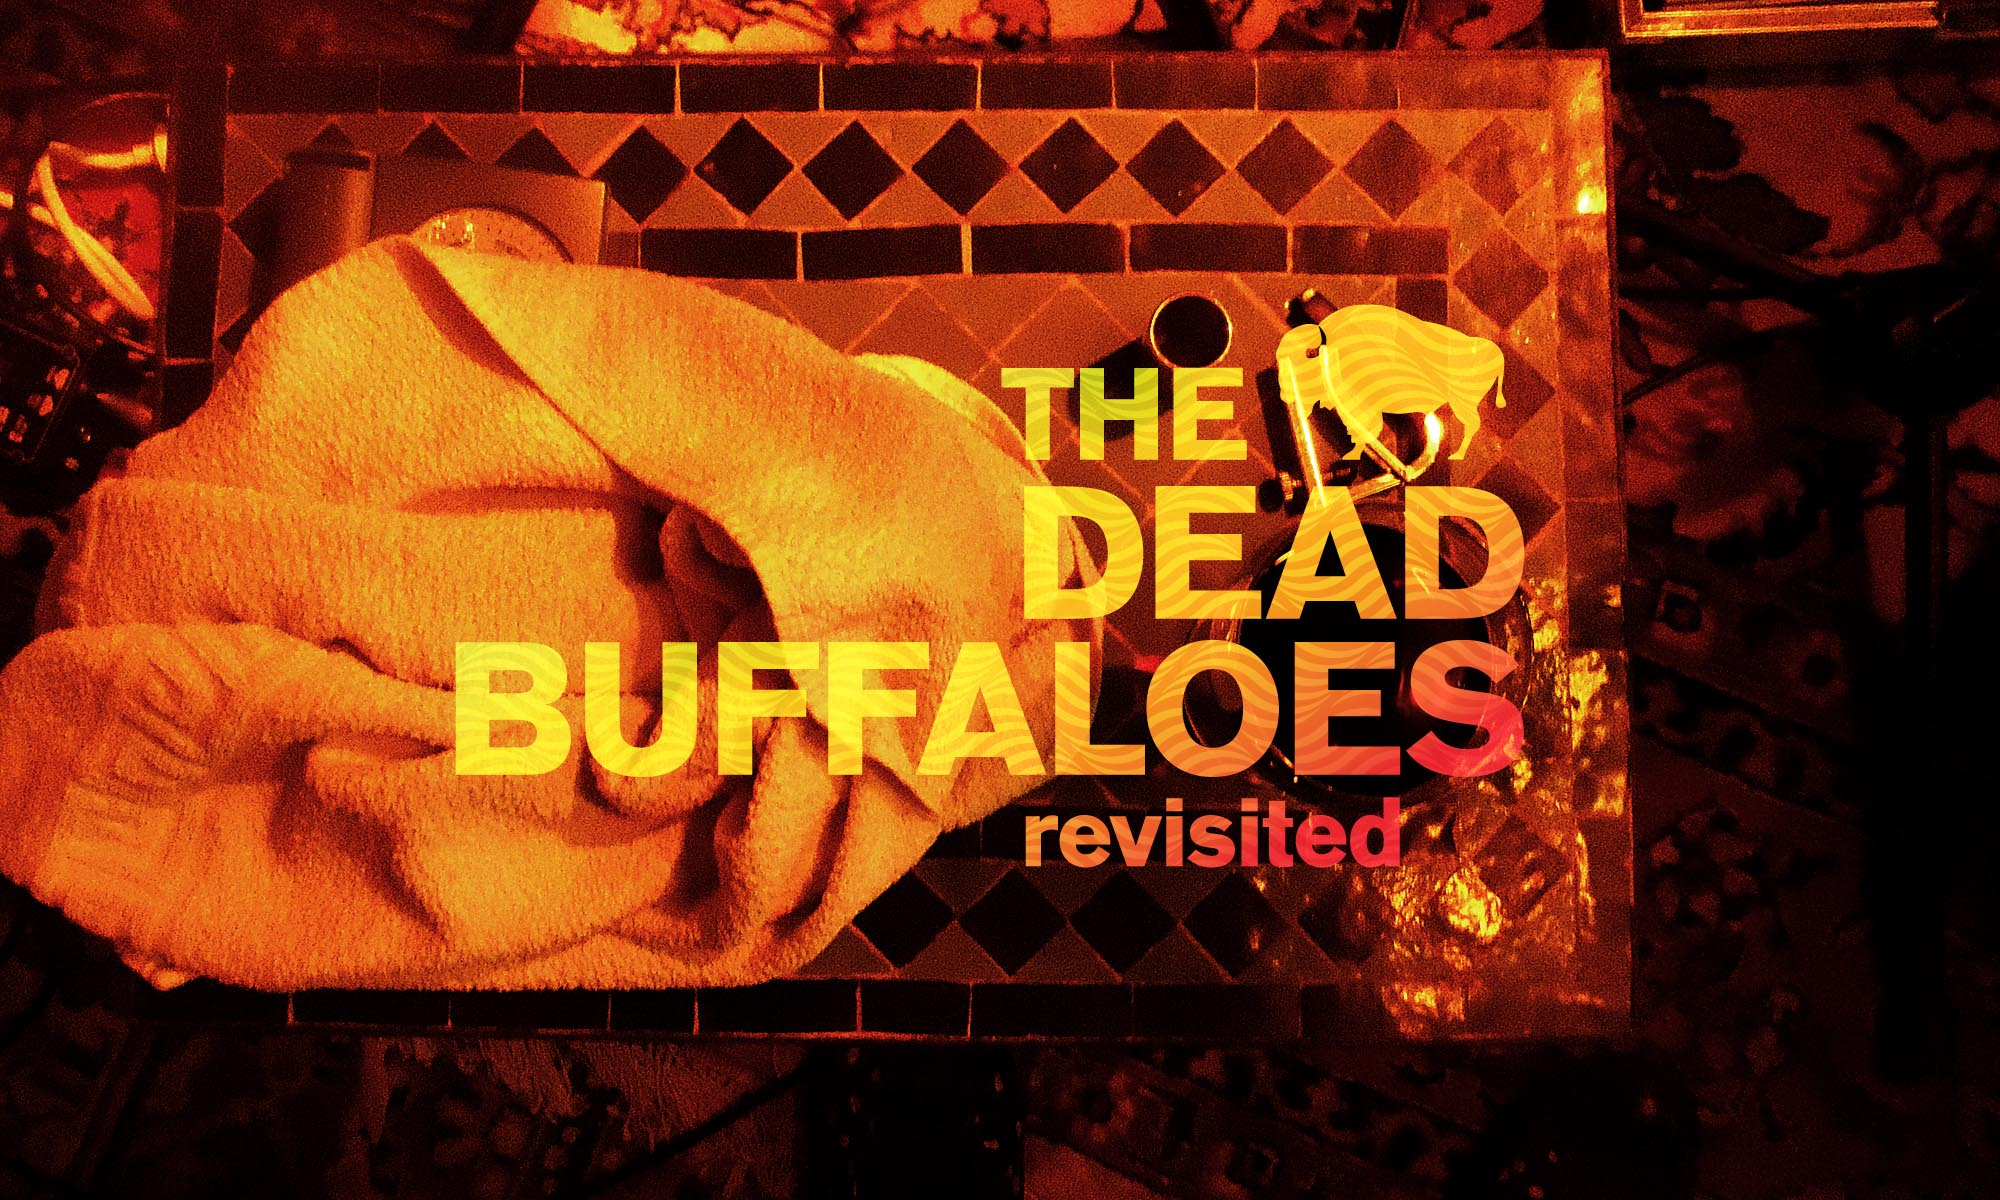 THE DEAD BUFFALOES – REVISITED